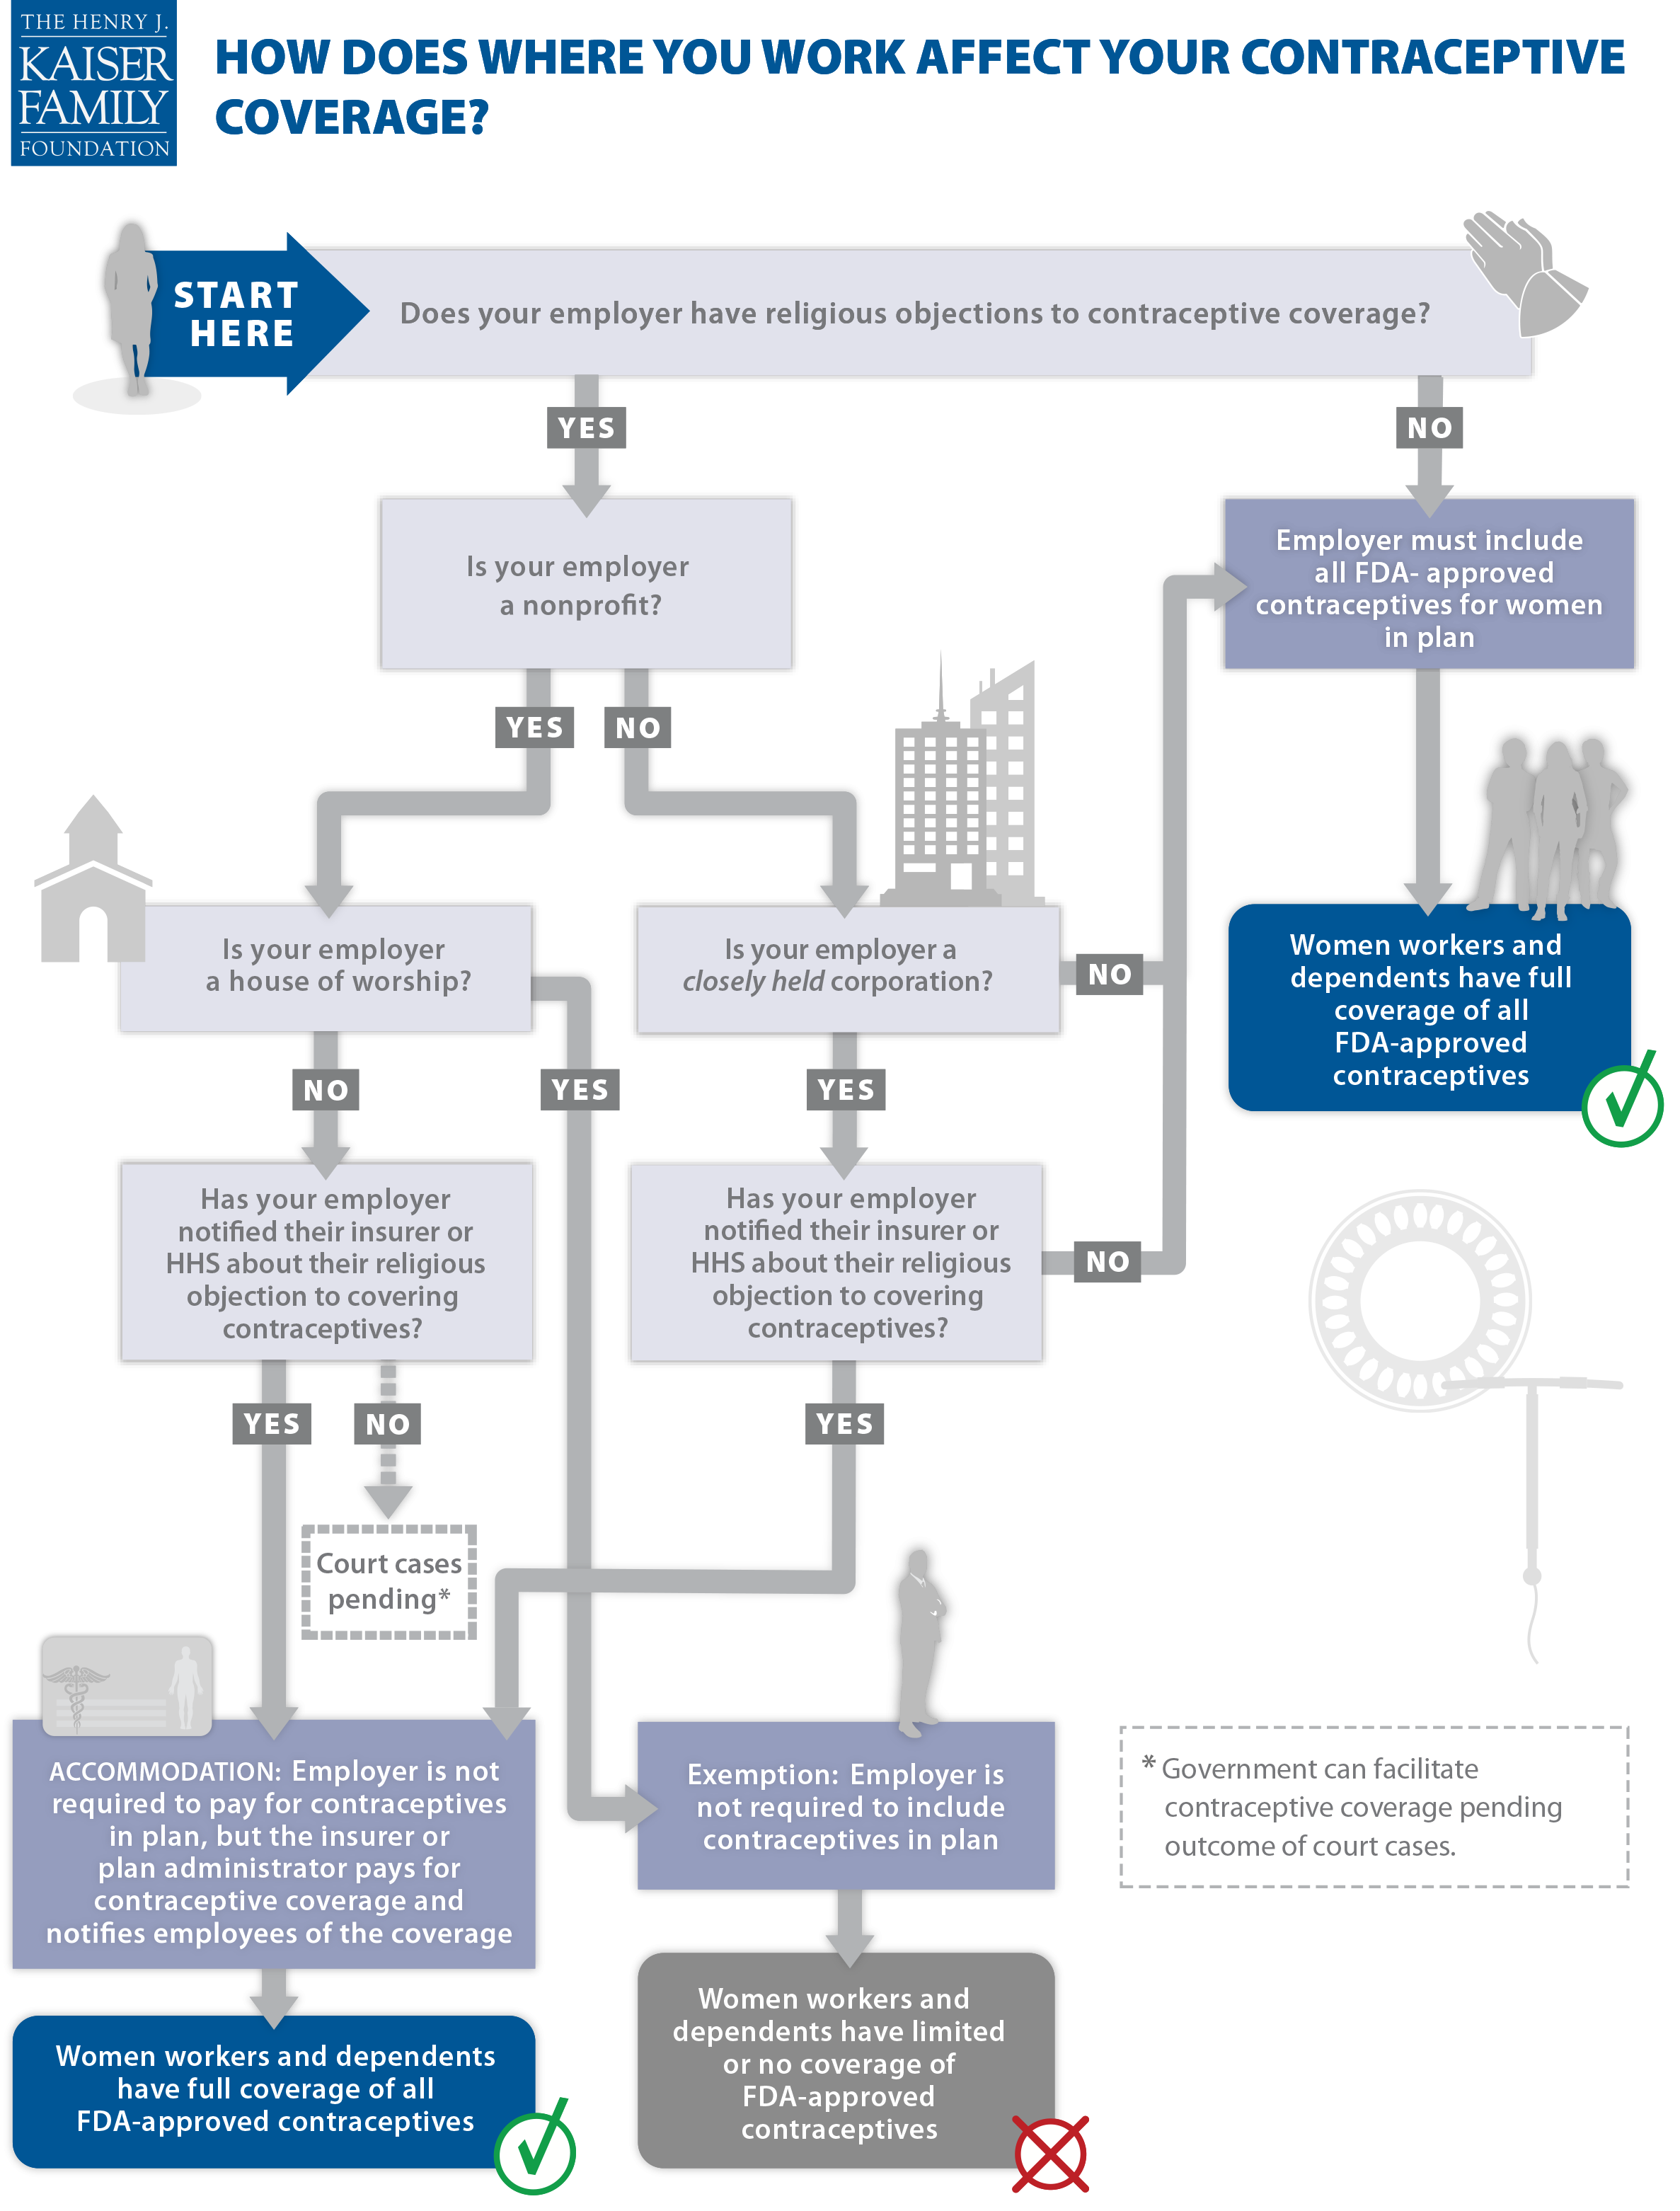 Infographic: How Does Where You Work Affect Your Contraceptive Converage?